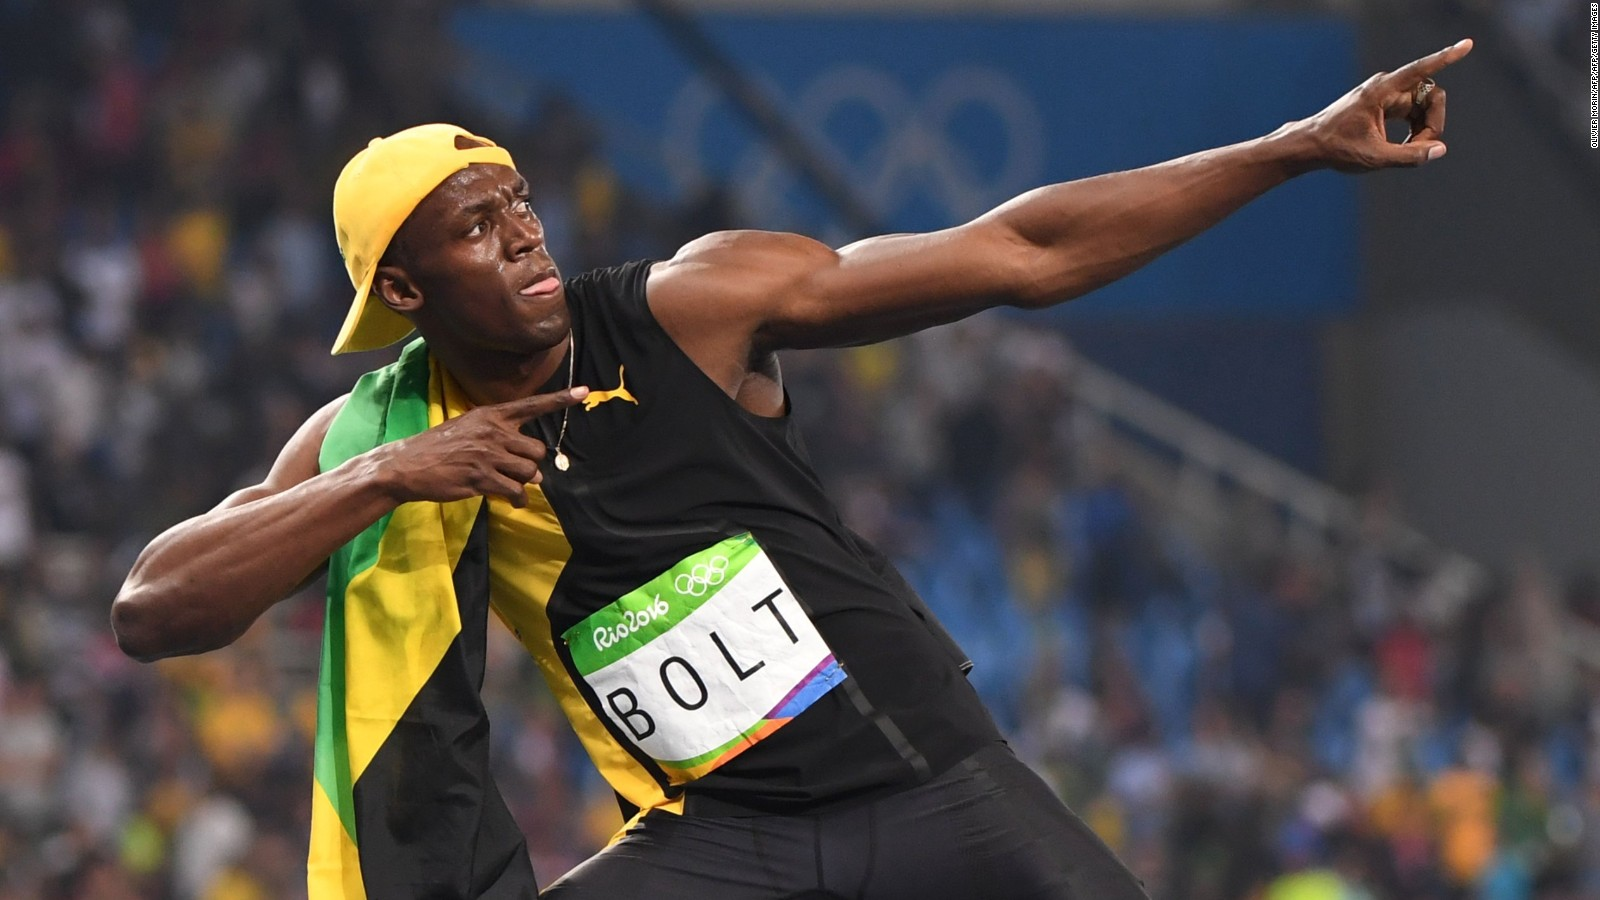 Usain Bolt Whats It Like Being The Olympic Champions Best Friend